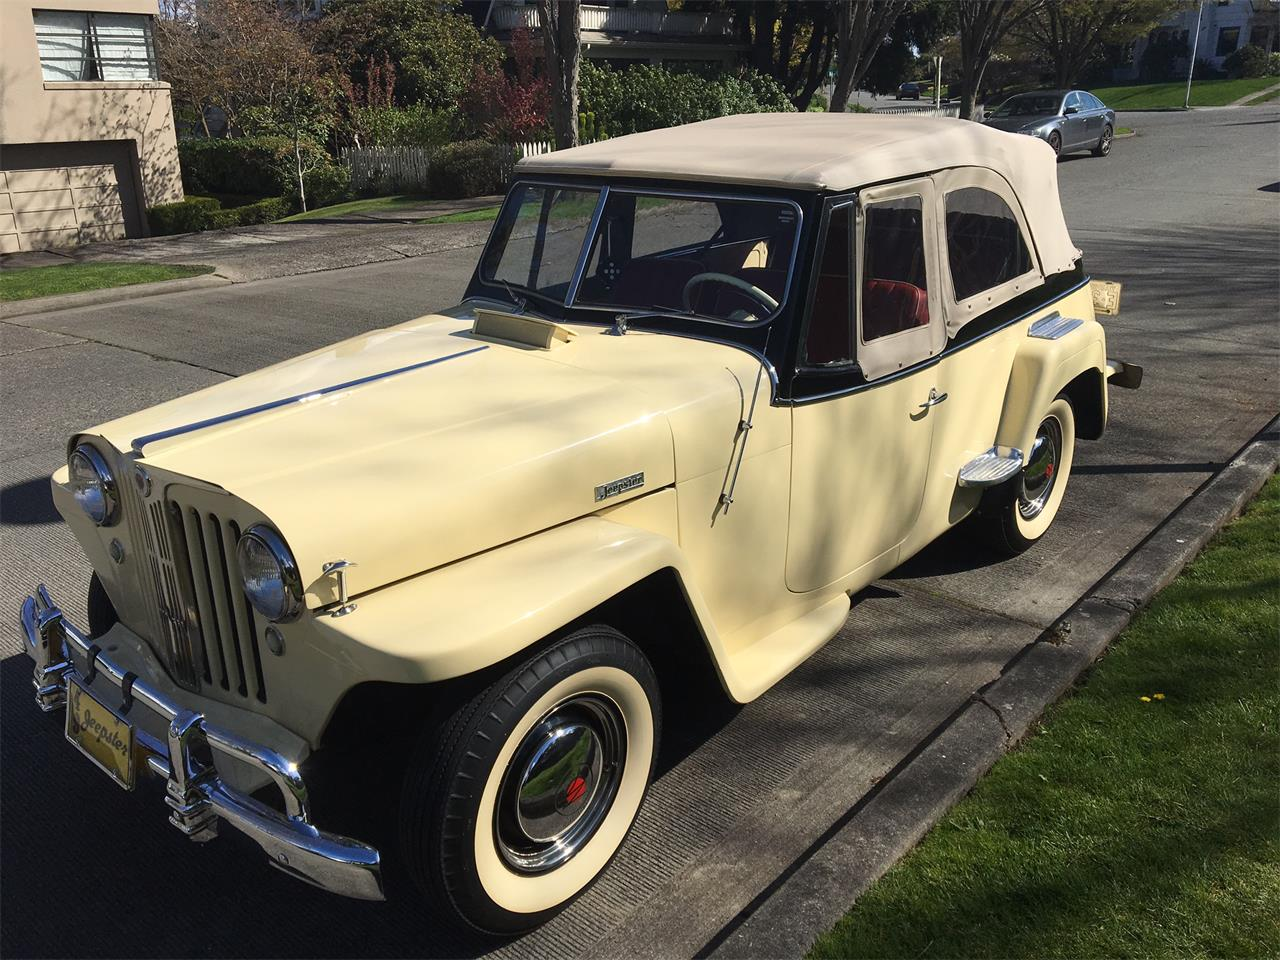 Large Picture of Classic 1949 Willys-Overland Jeepster located in Washington Offered by a Private Seller - LPU9